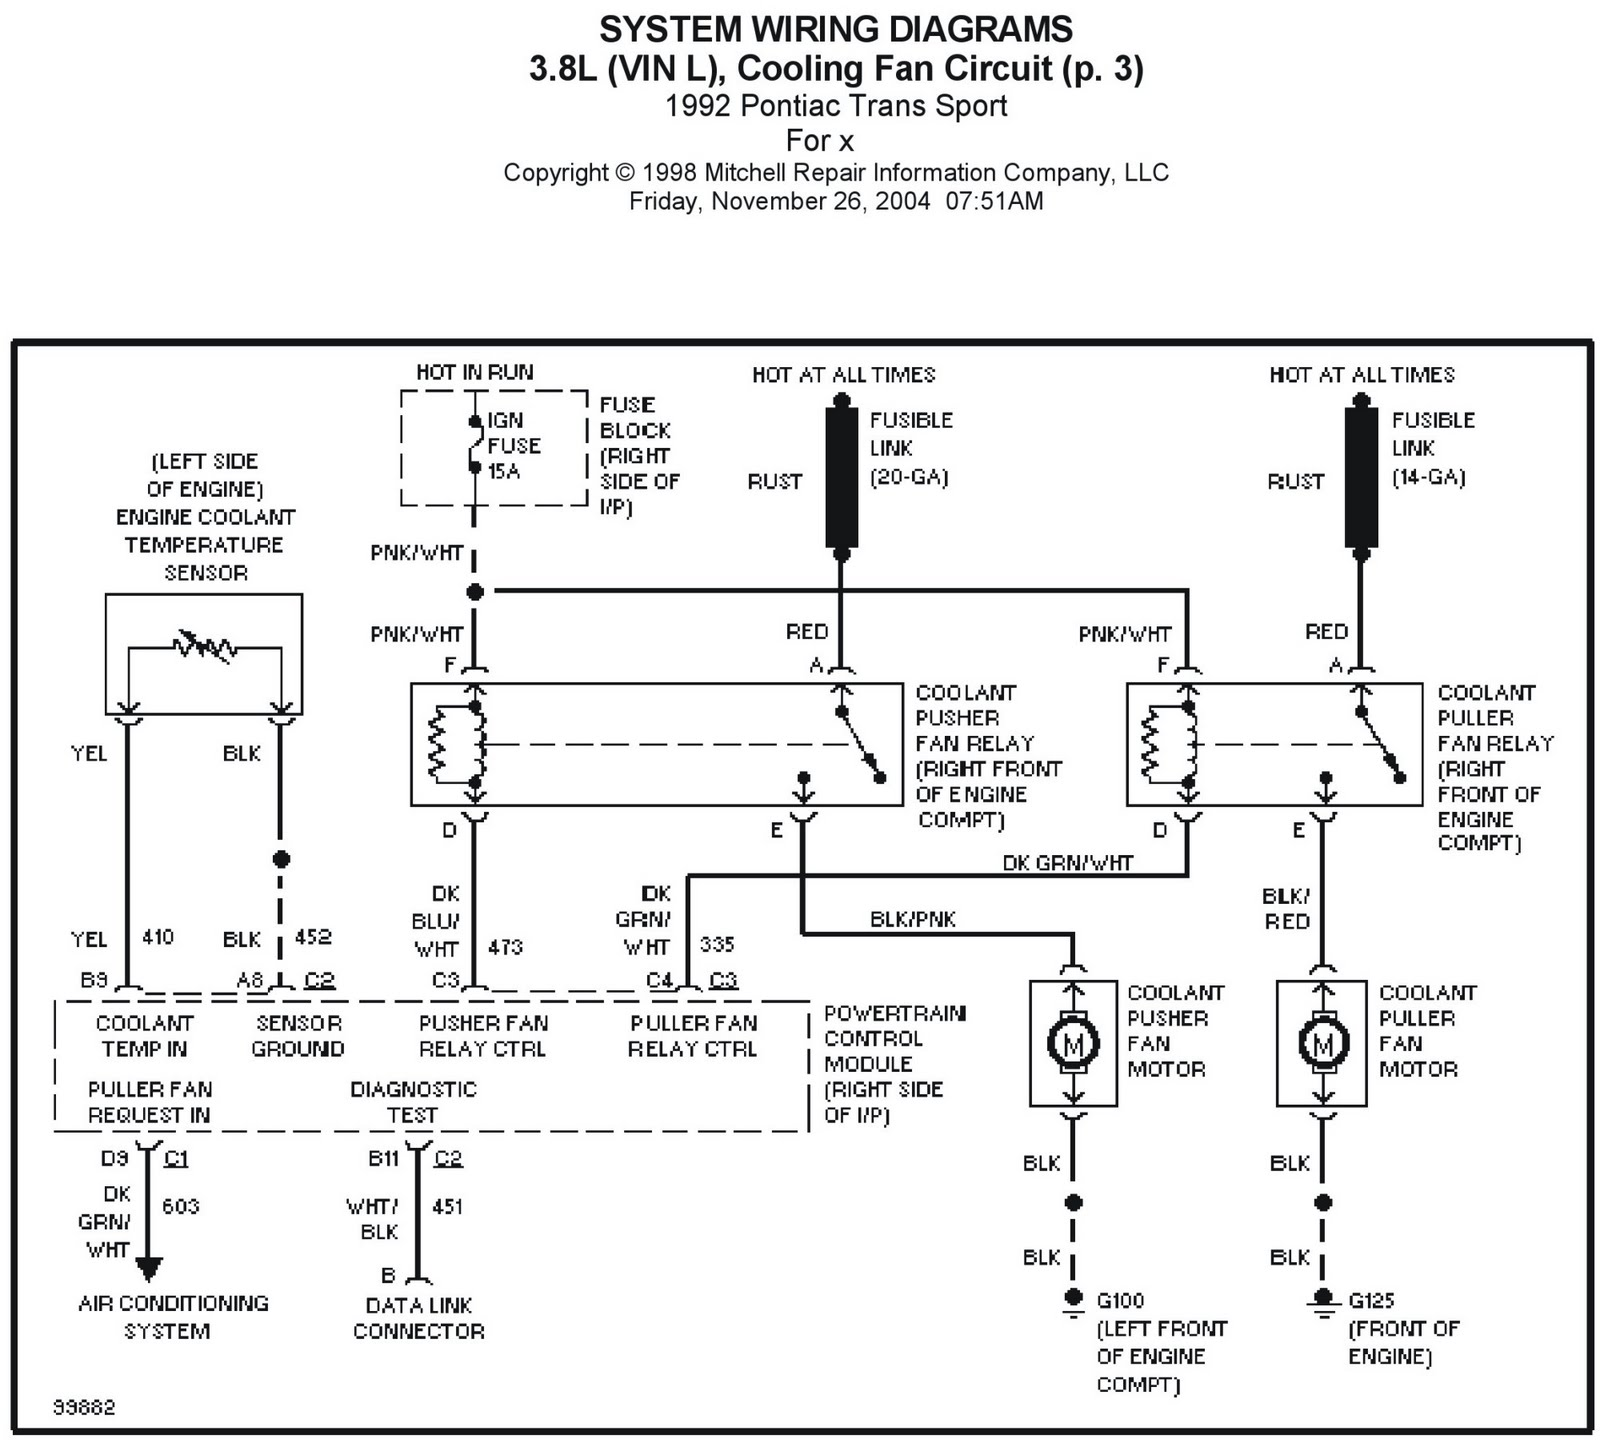 Chevy Fuel Pump Wiring Diagram 534b4295ff18ceca in addition Wiring together with 4th gen tech2 further 1993 Accord Ex 4dr Under Dash Fuse Diagram 3244340 in addition 44745 L67 Equipped Cars My Car Starts And Then Stalls Repair Inside. on 1997 chevy lumina fuse box diagram